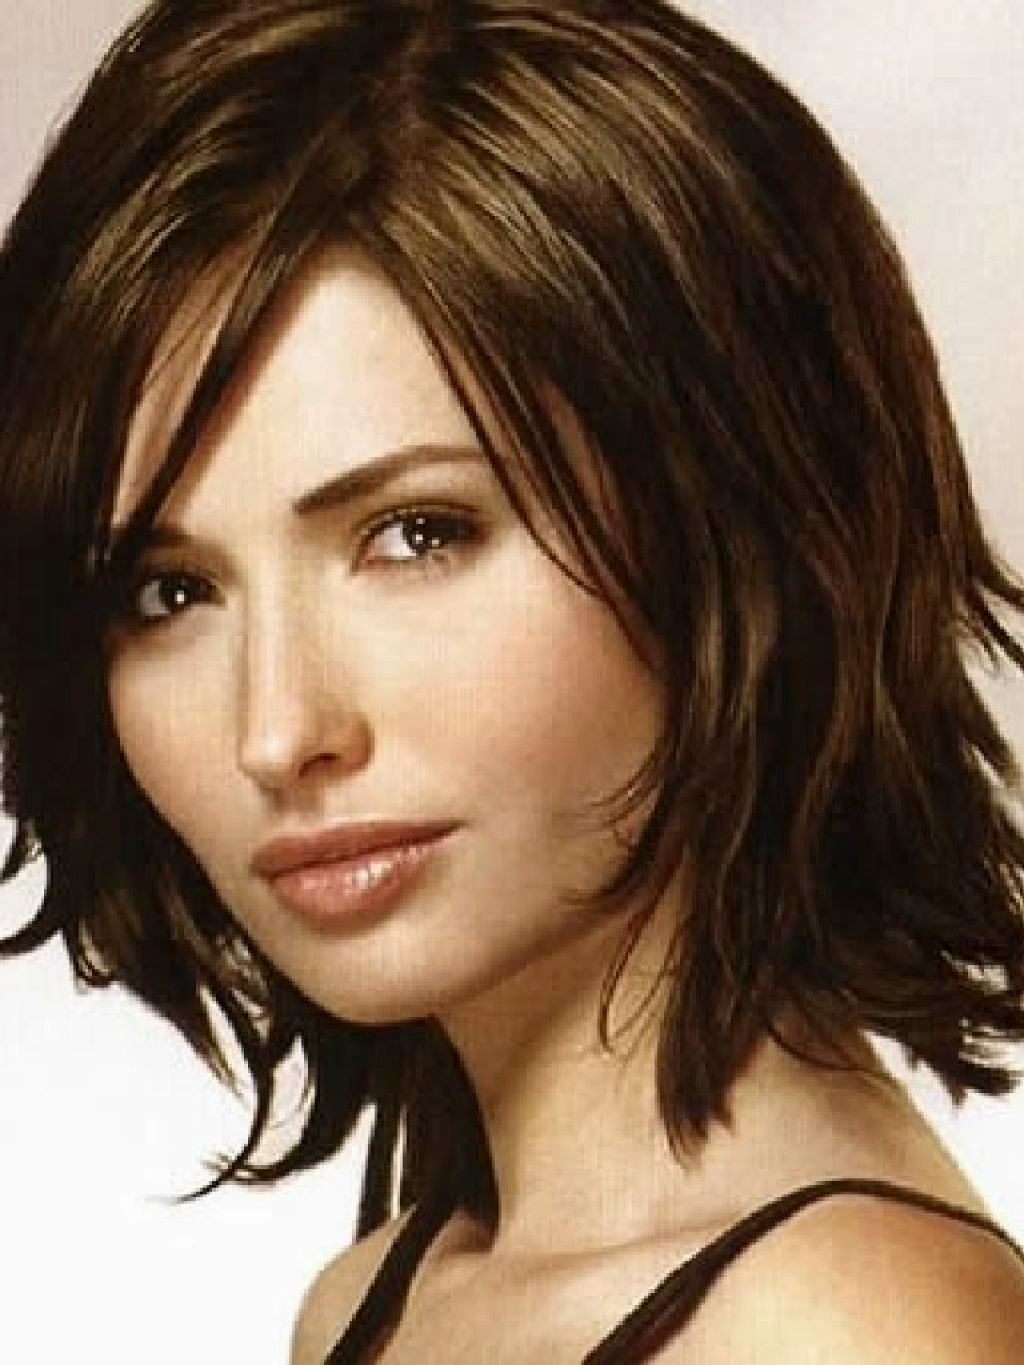 haircut-women--medium shoulder length in piecey layers, side part